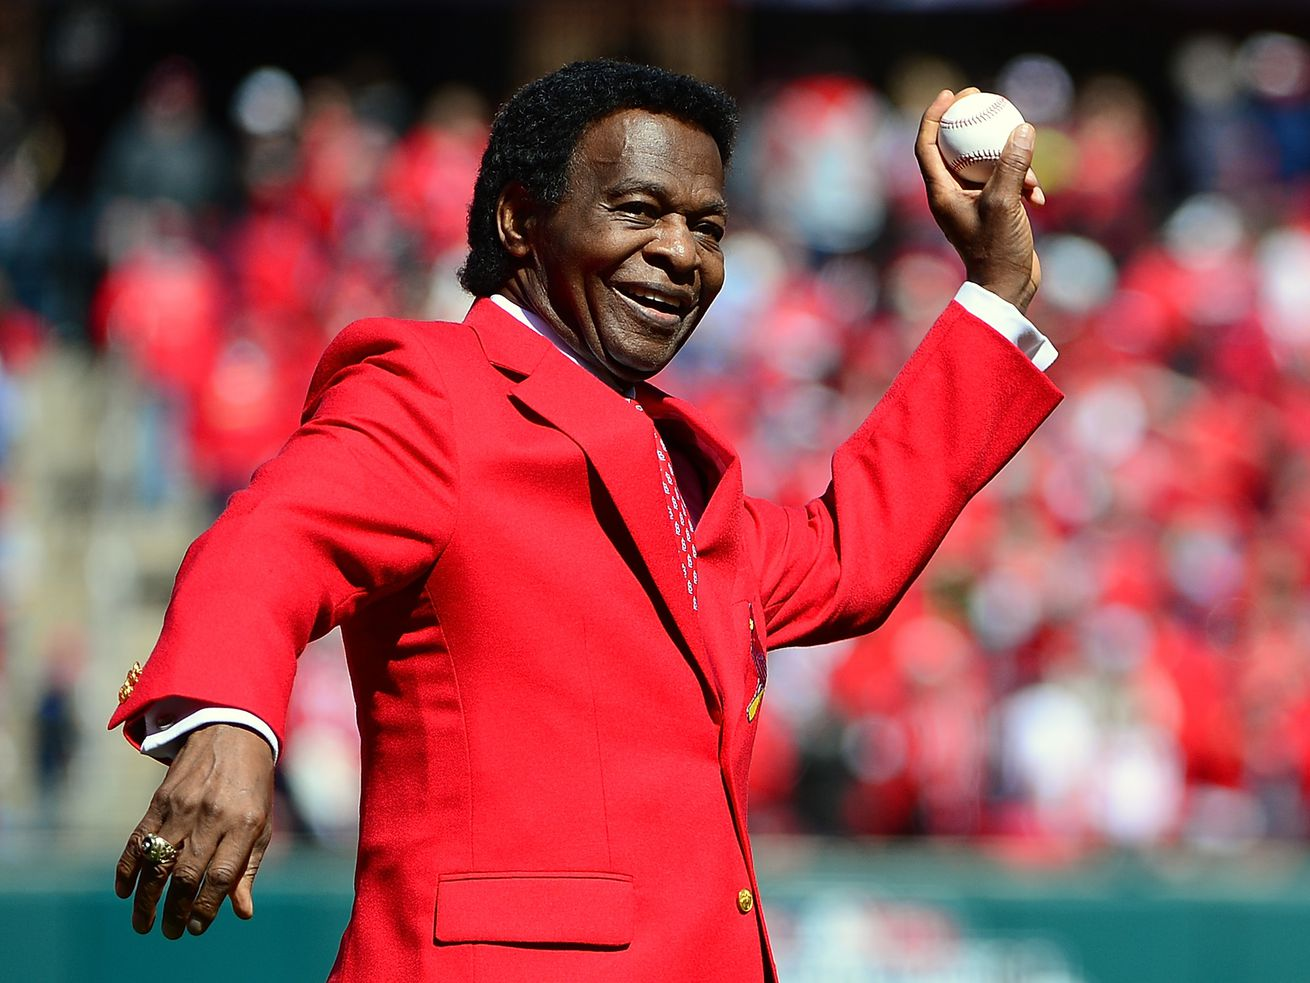 Hall of Fame outfielder Lou Brock dies at age 81